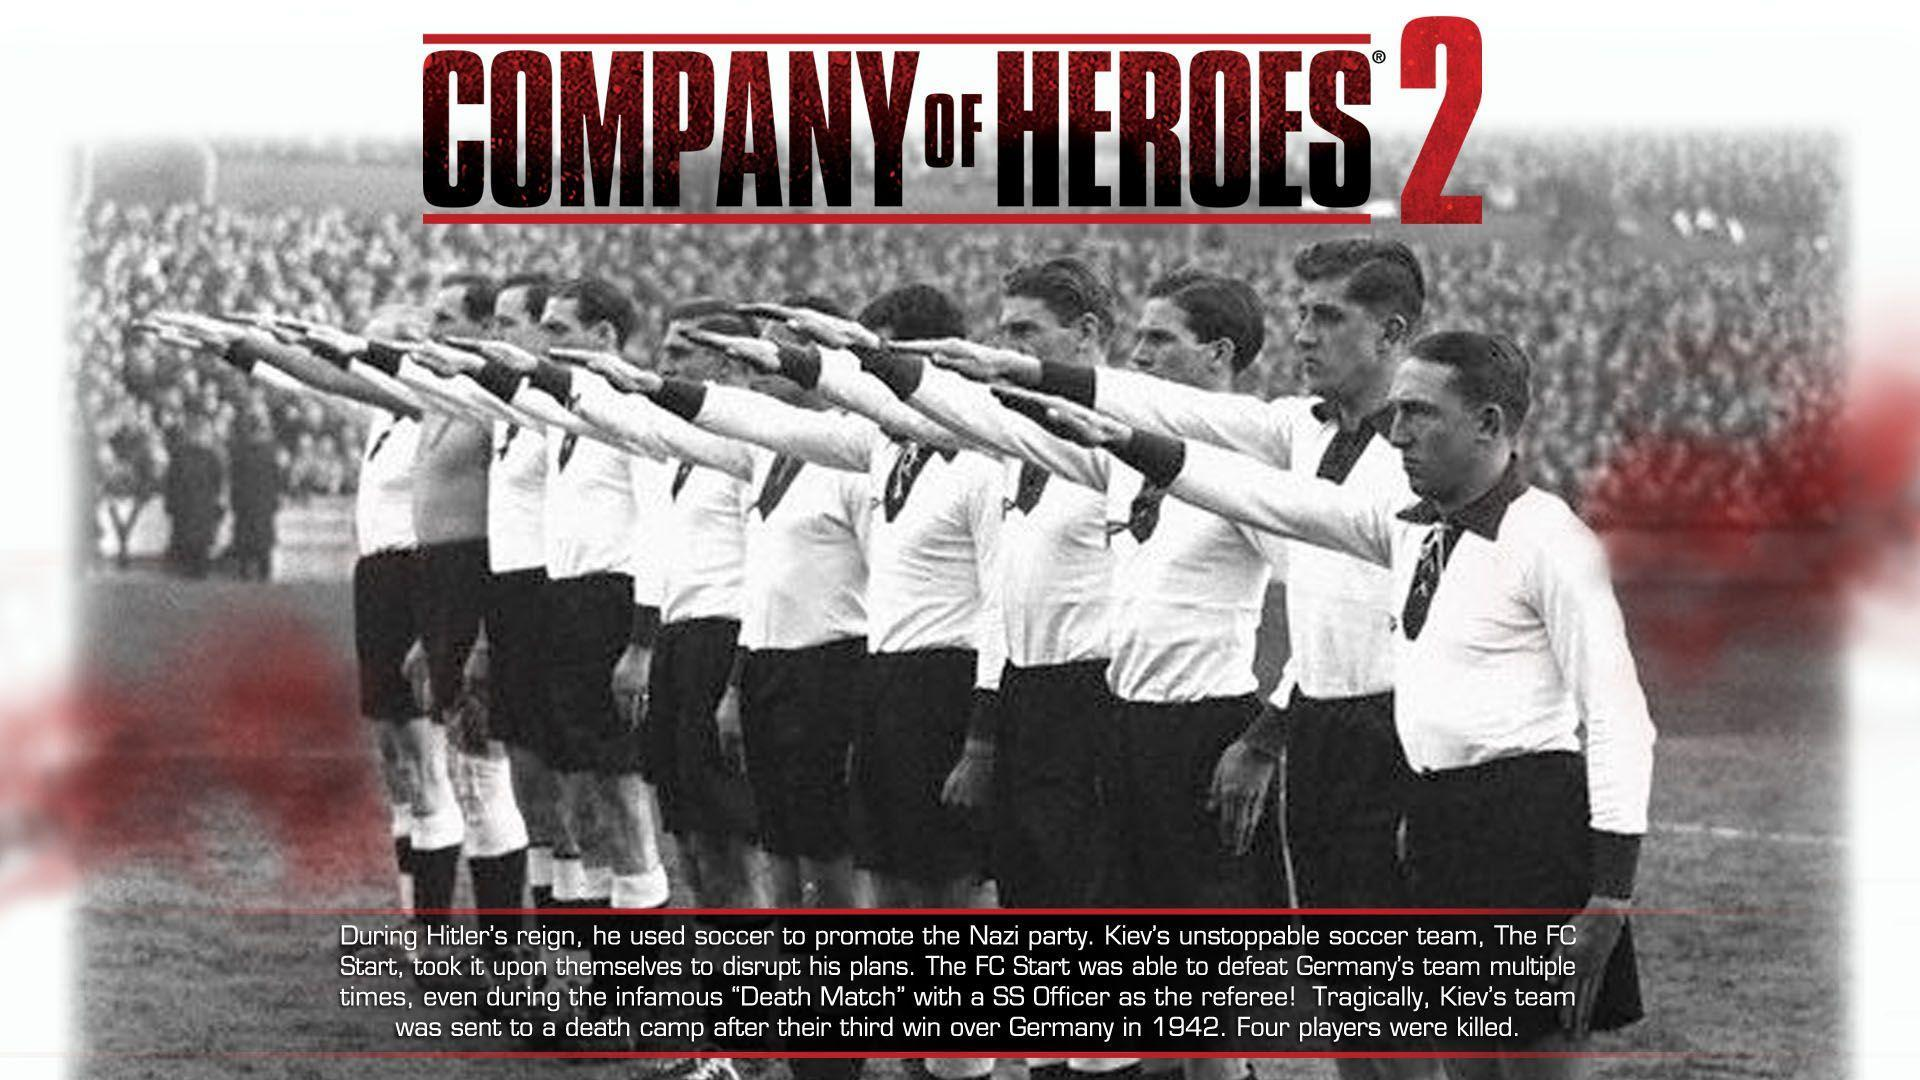 Company Of Heroes 2 Wallpapers Wallpaper Cave 1 Wallpaper